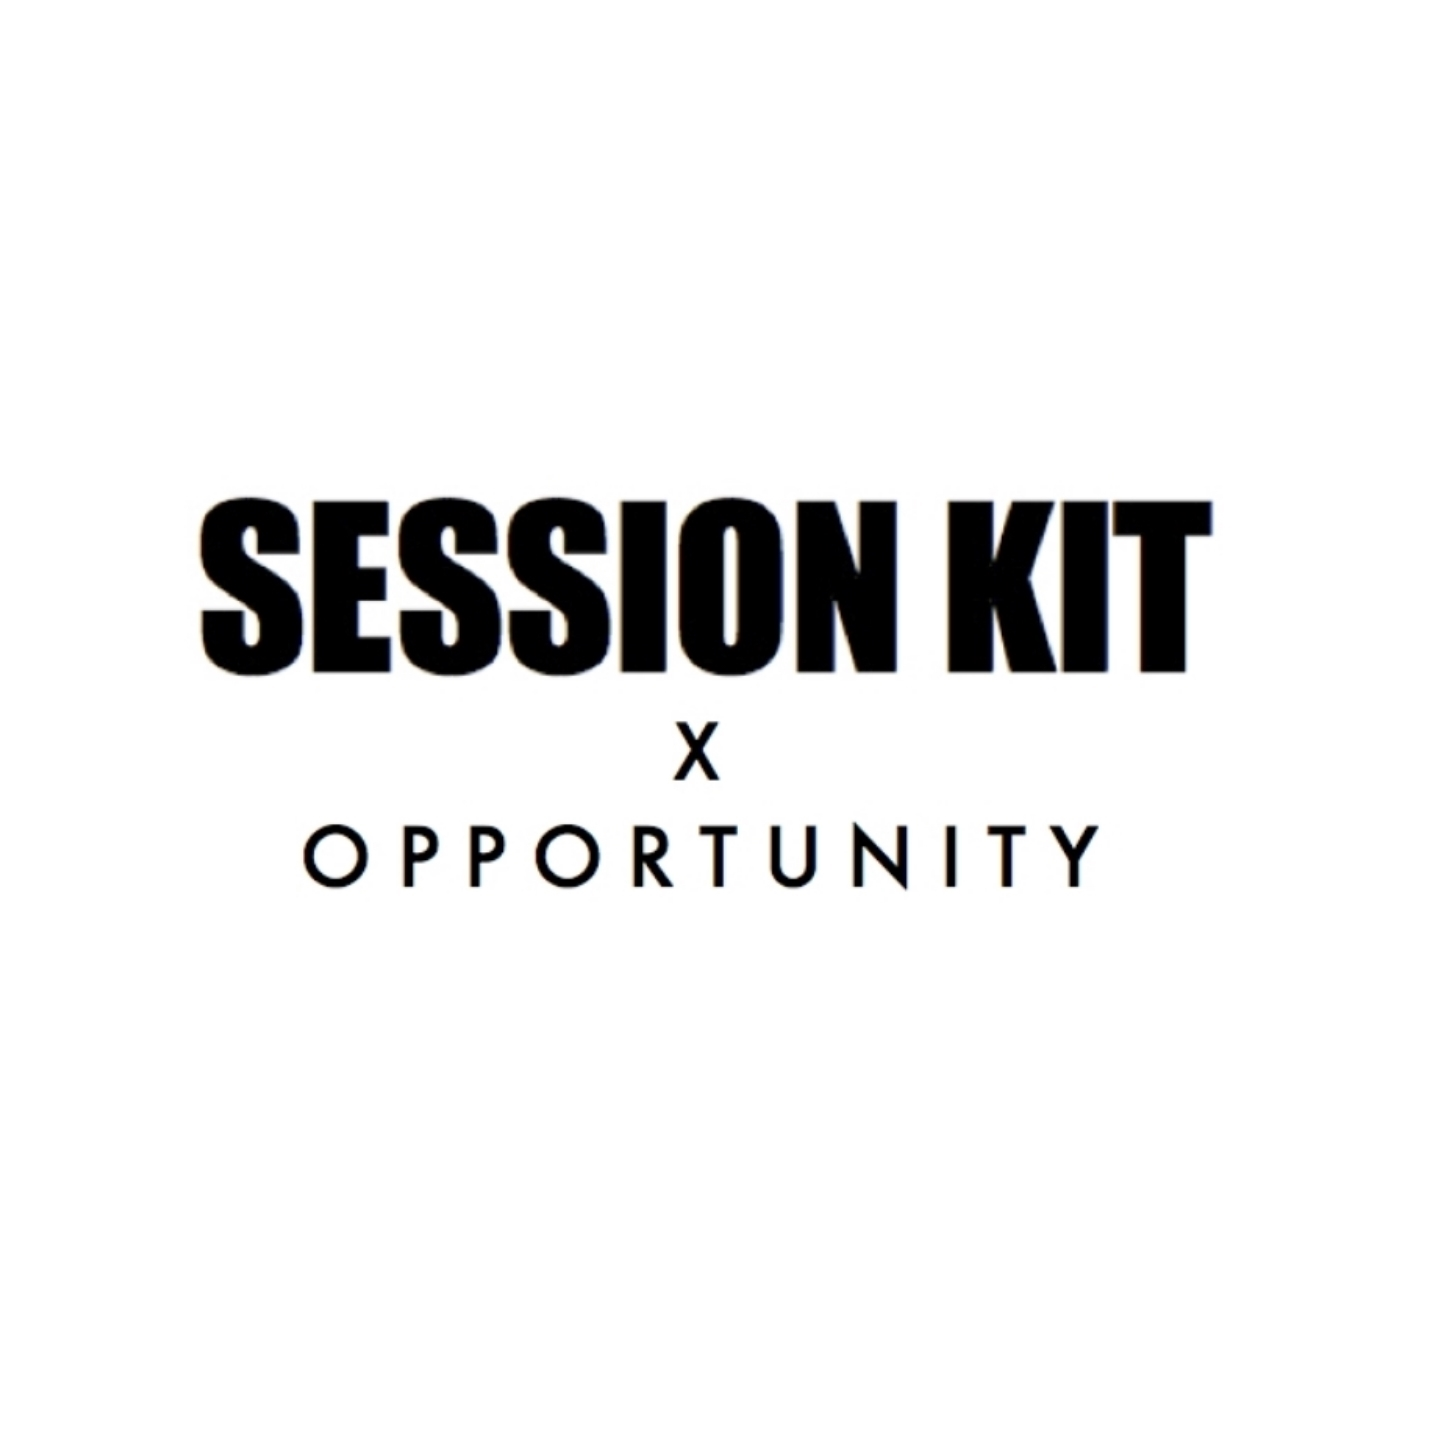 session kit oppotunity.jpg